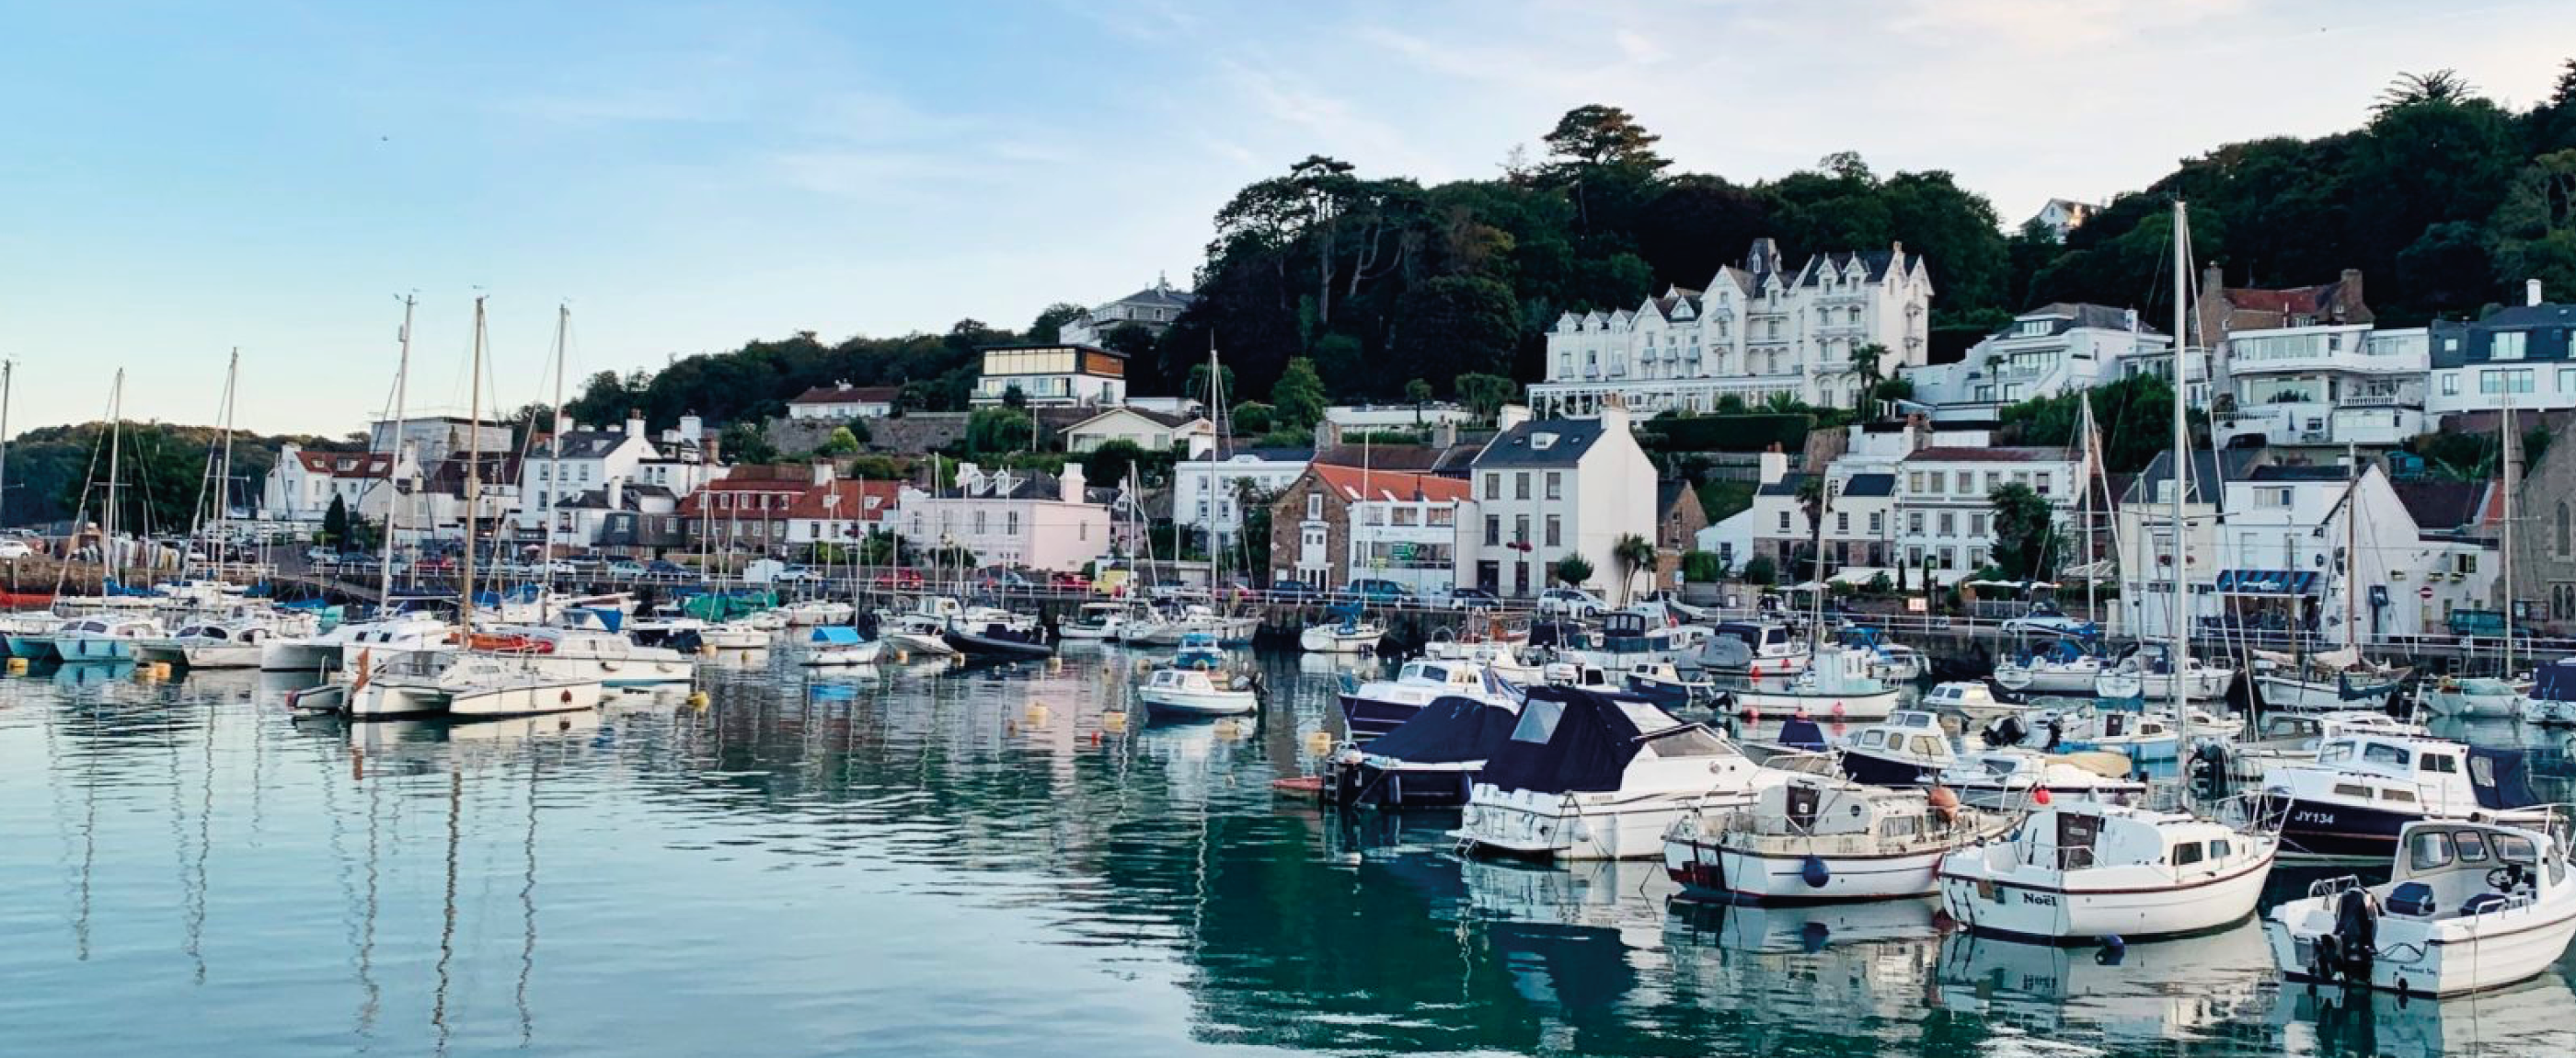 Perfect Business Opportunity to Purchase a Freehold Property in the Heart of St Aubin's